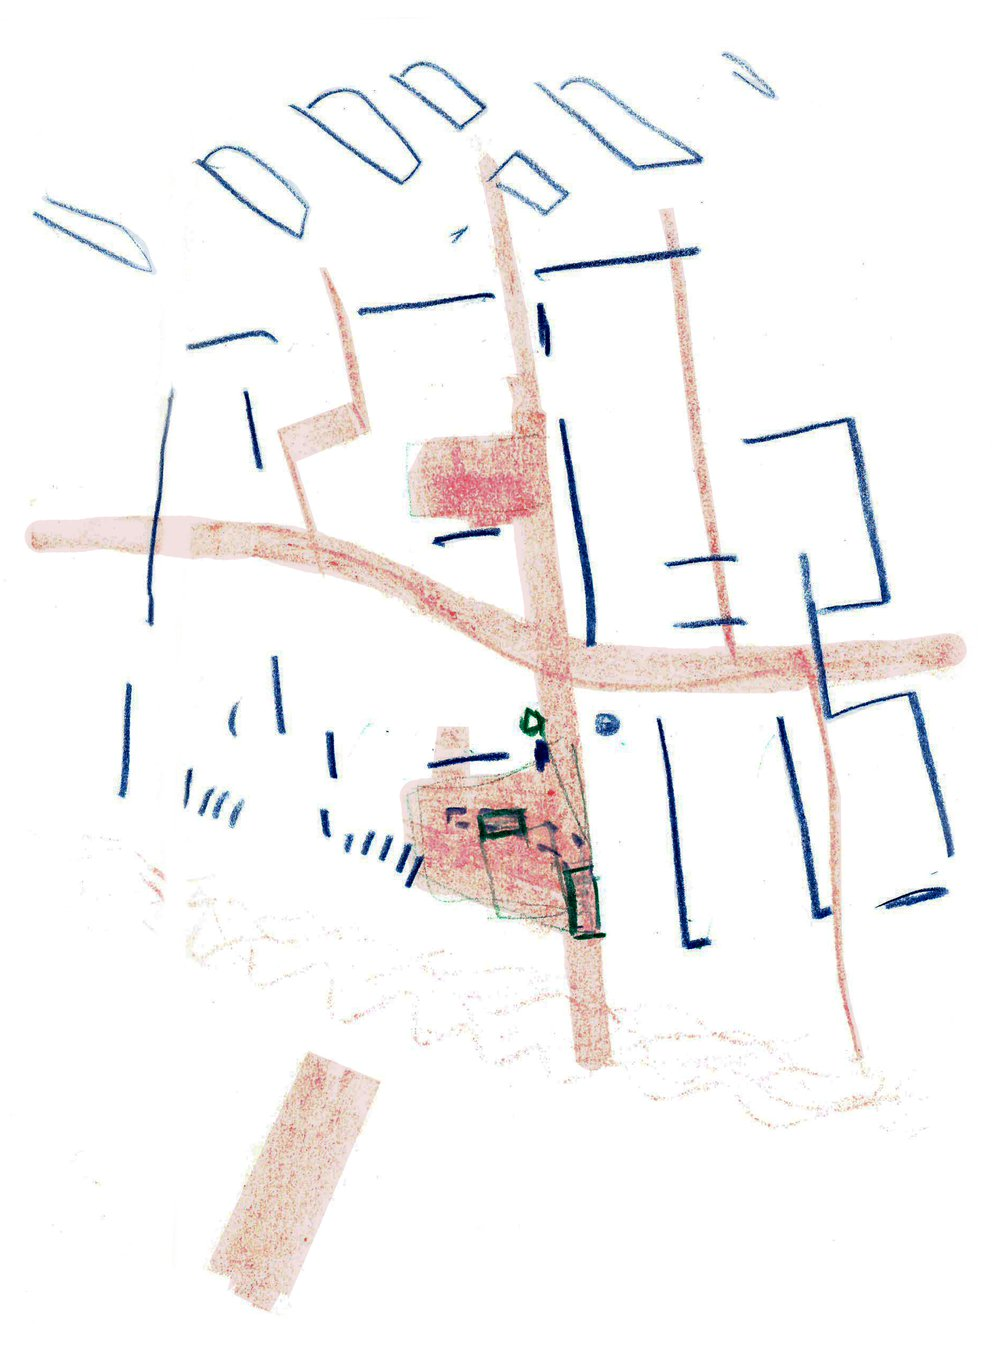 SITE PLAN ABSTRACT_EDITED.jpg